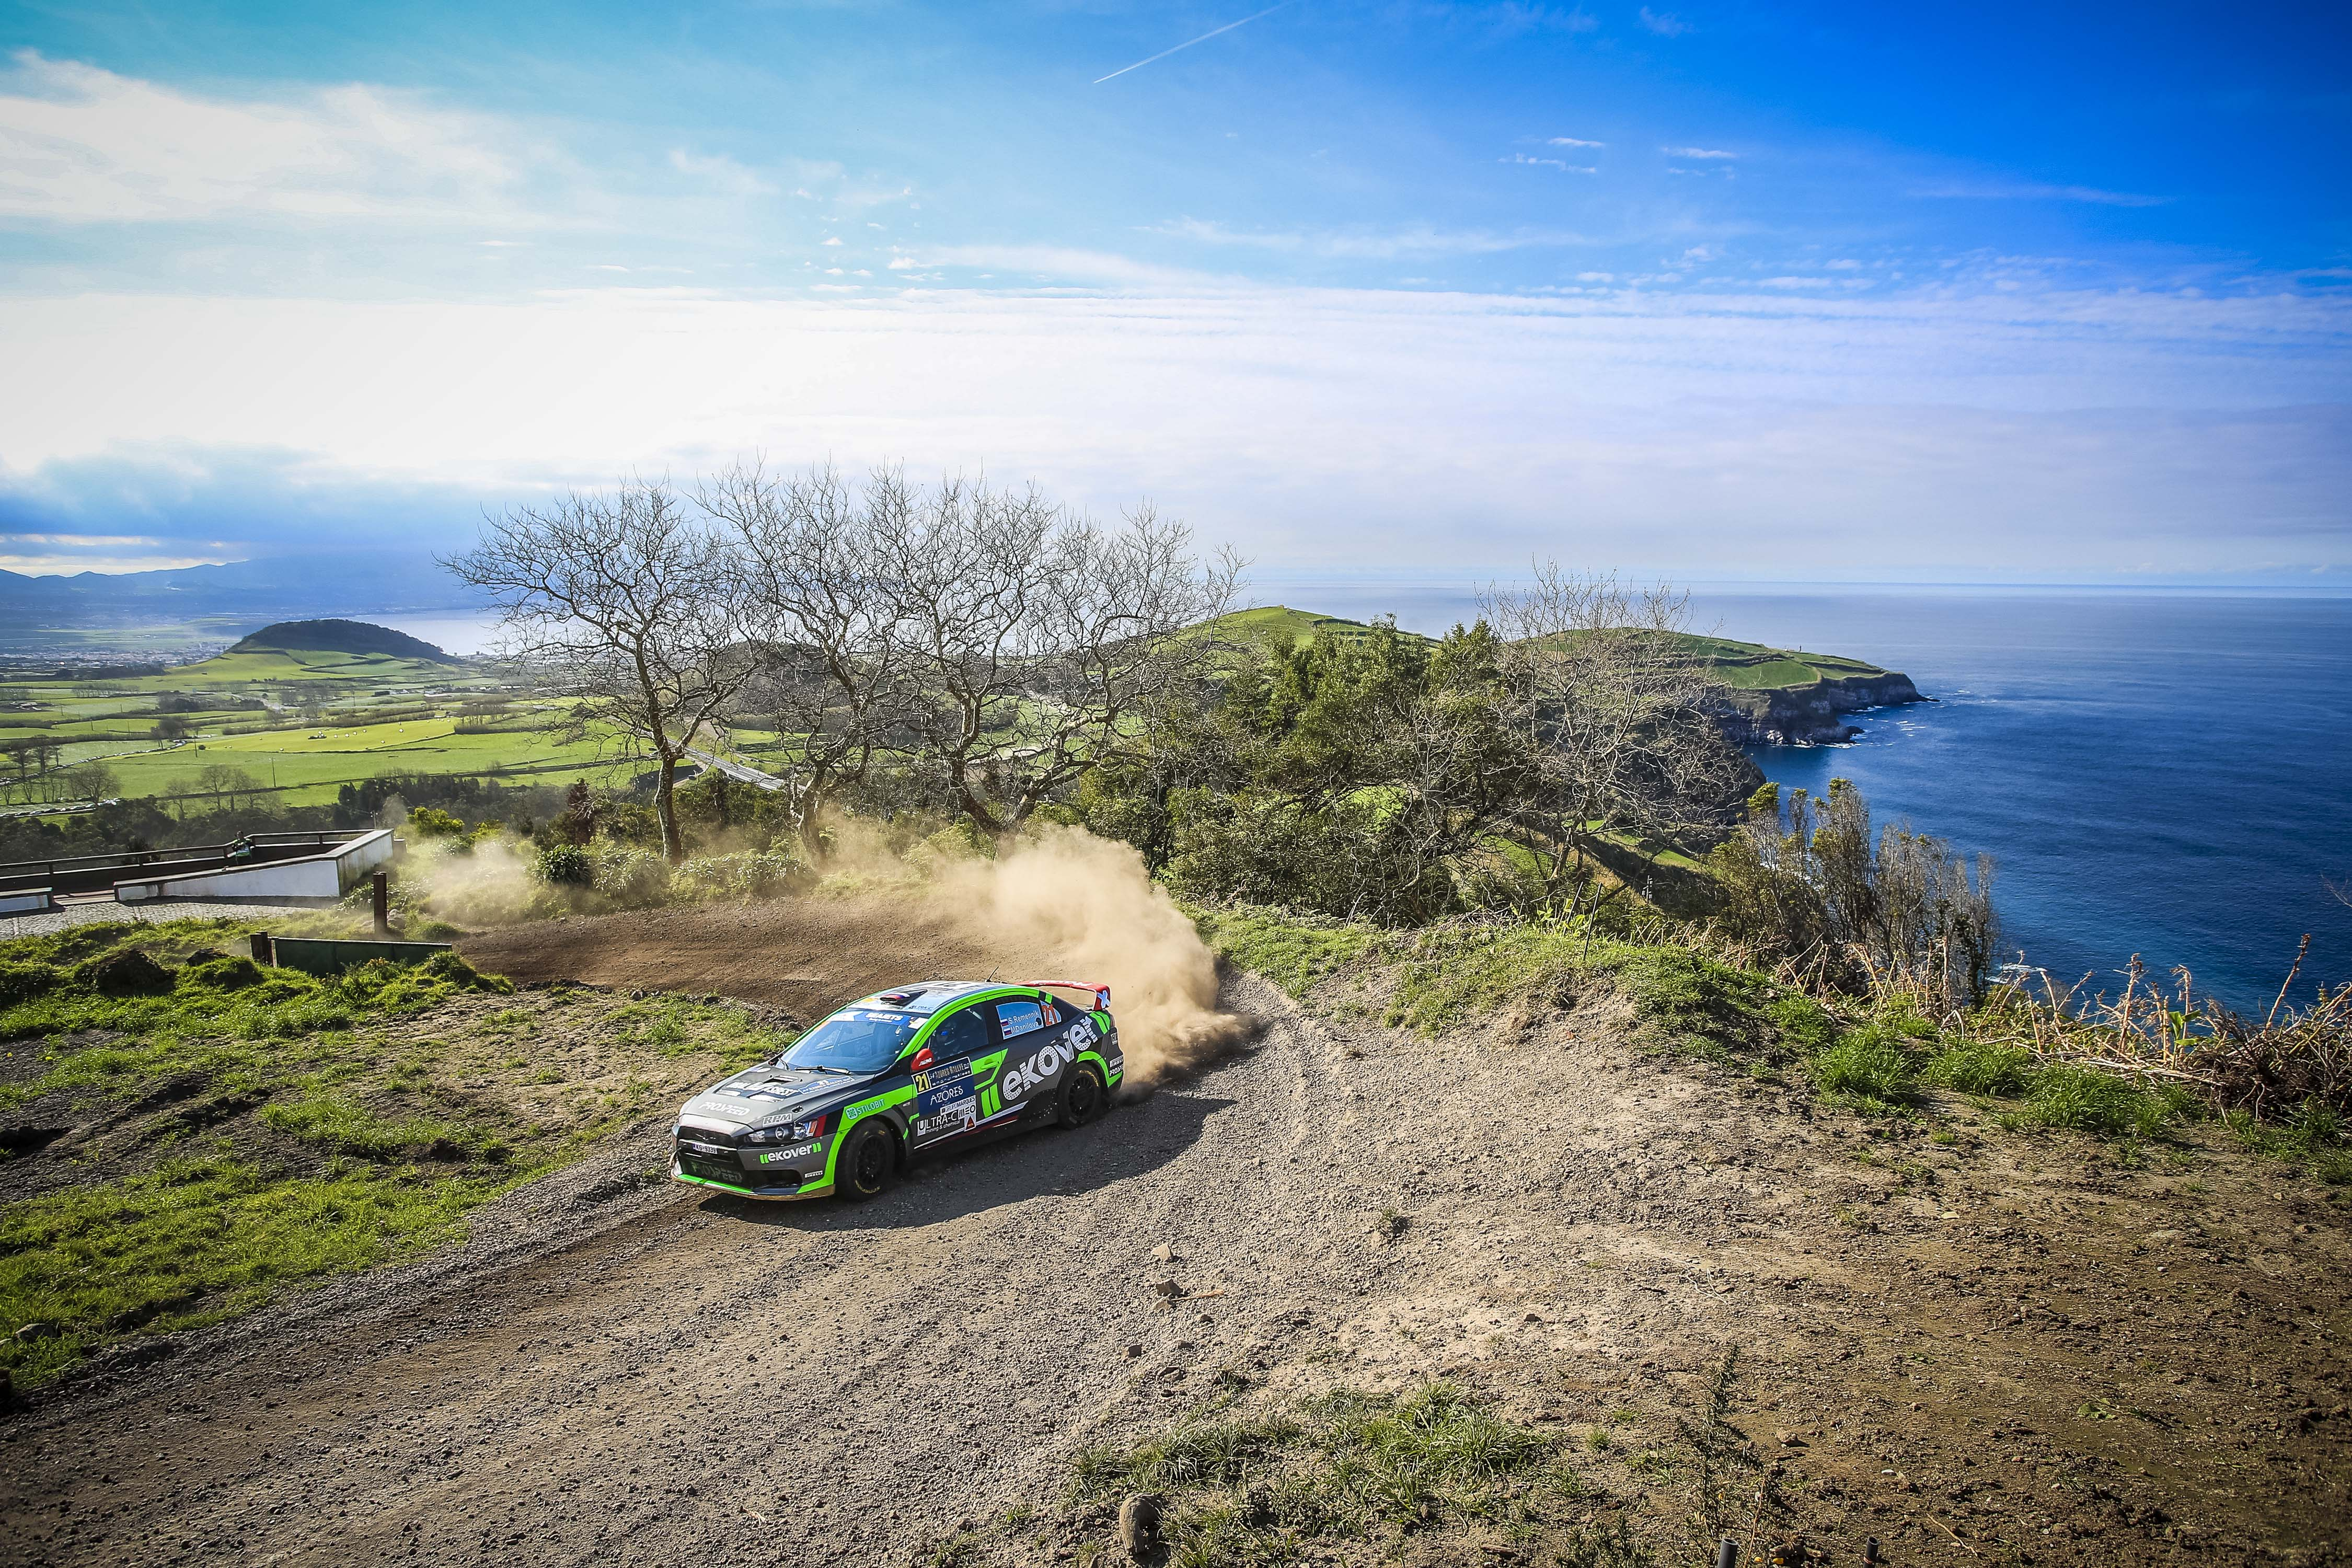 21 REMENNIK Sergey (rus), DANILOVA Marina (rus), Russian Performance during the 2019 European Rally Championship ERC Azores rally,  from March 21 to 23, at Ponta Delgada Portugal - Photo Gregory Lenormand / DPPI